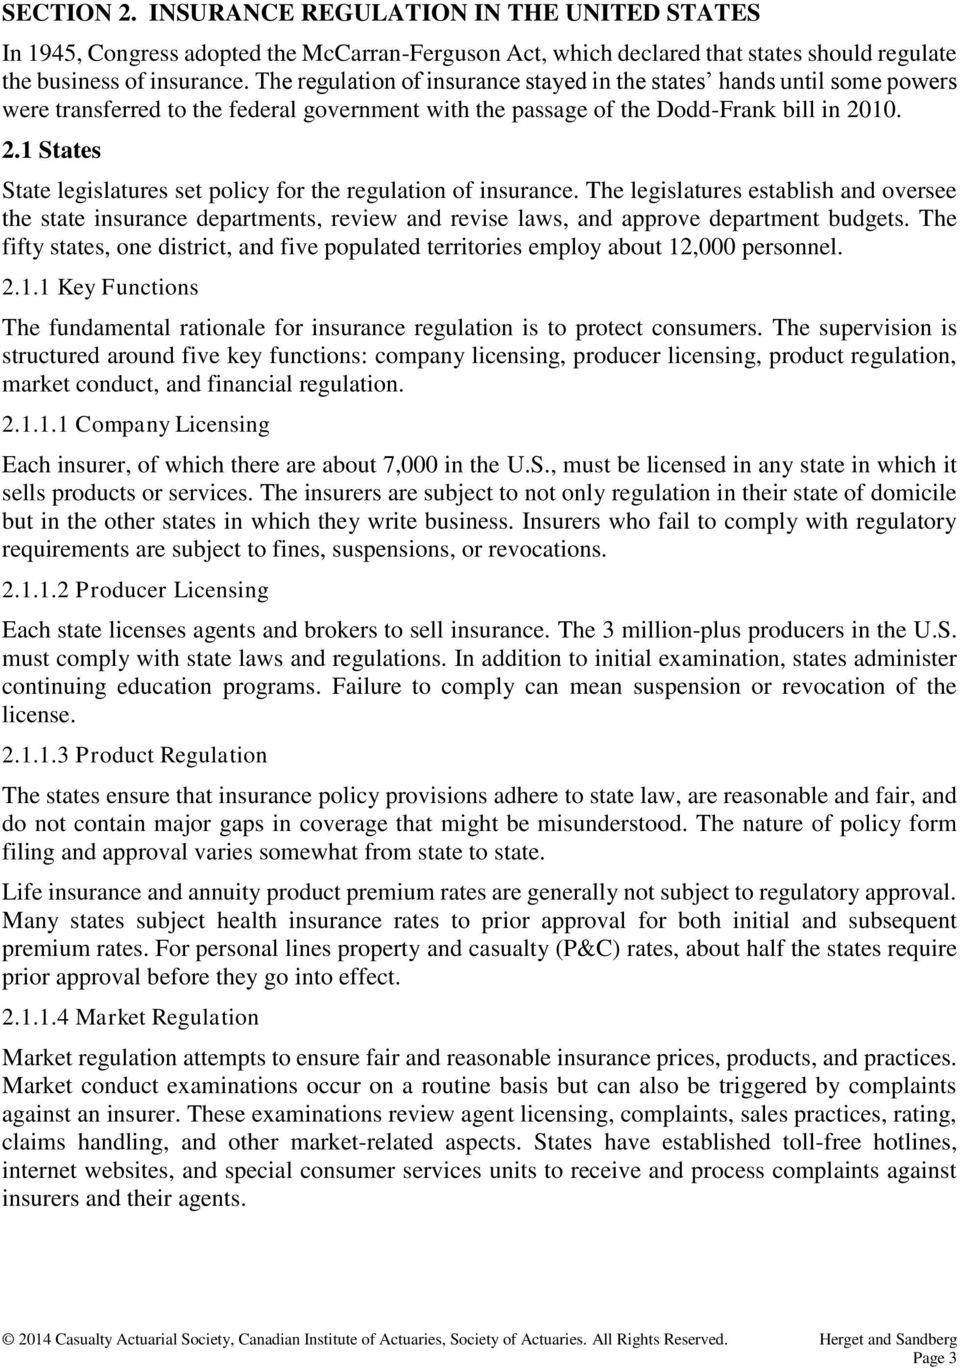 10. 2.1 States State legislatures set policy for the regulation of insurance.